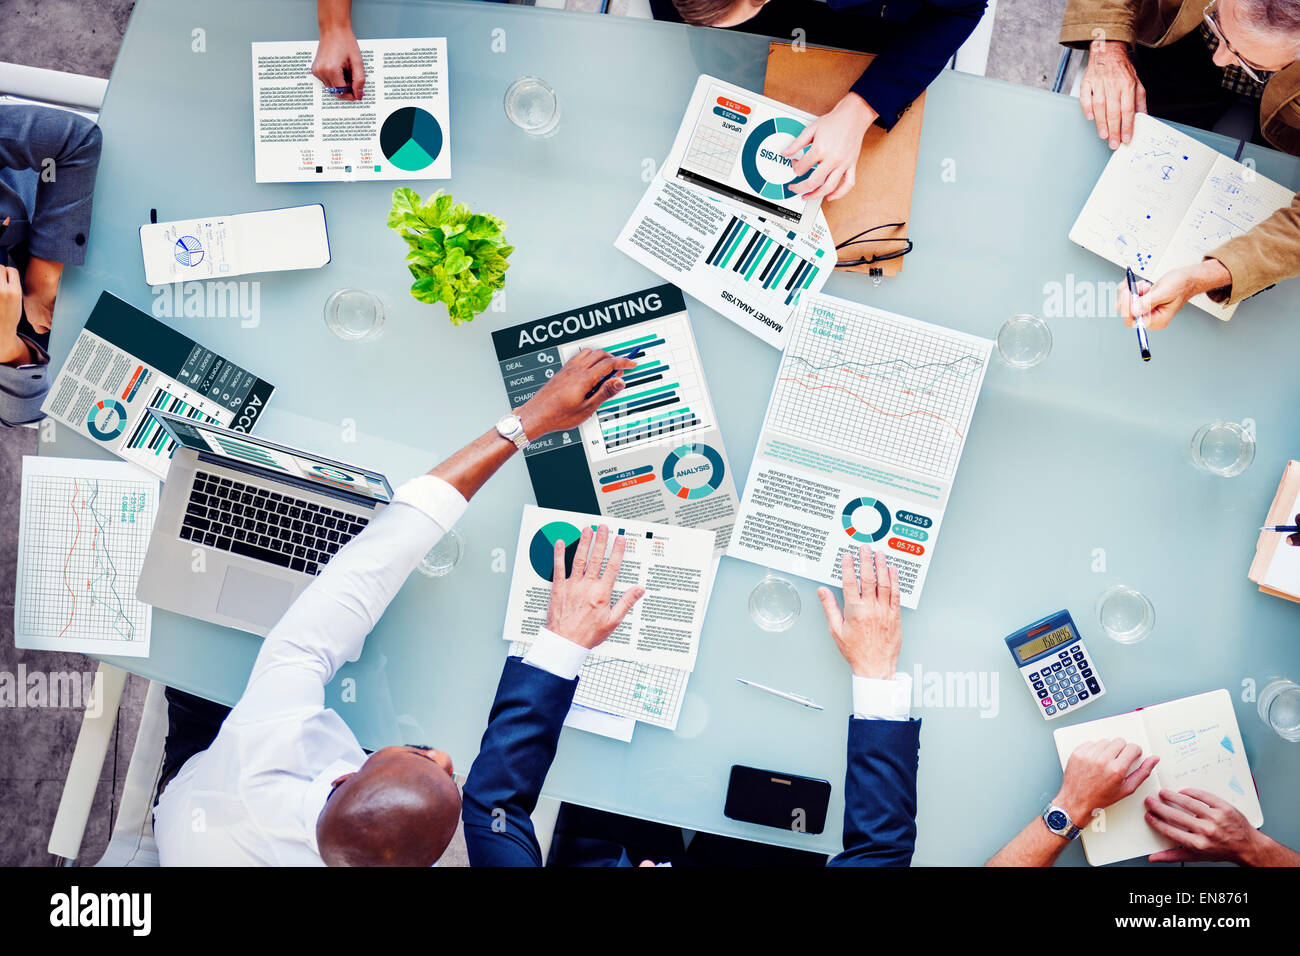 Business People Accounting Report Analysis Concept - Stock Image